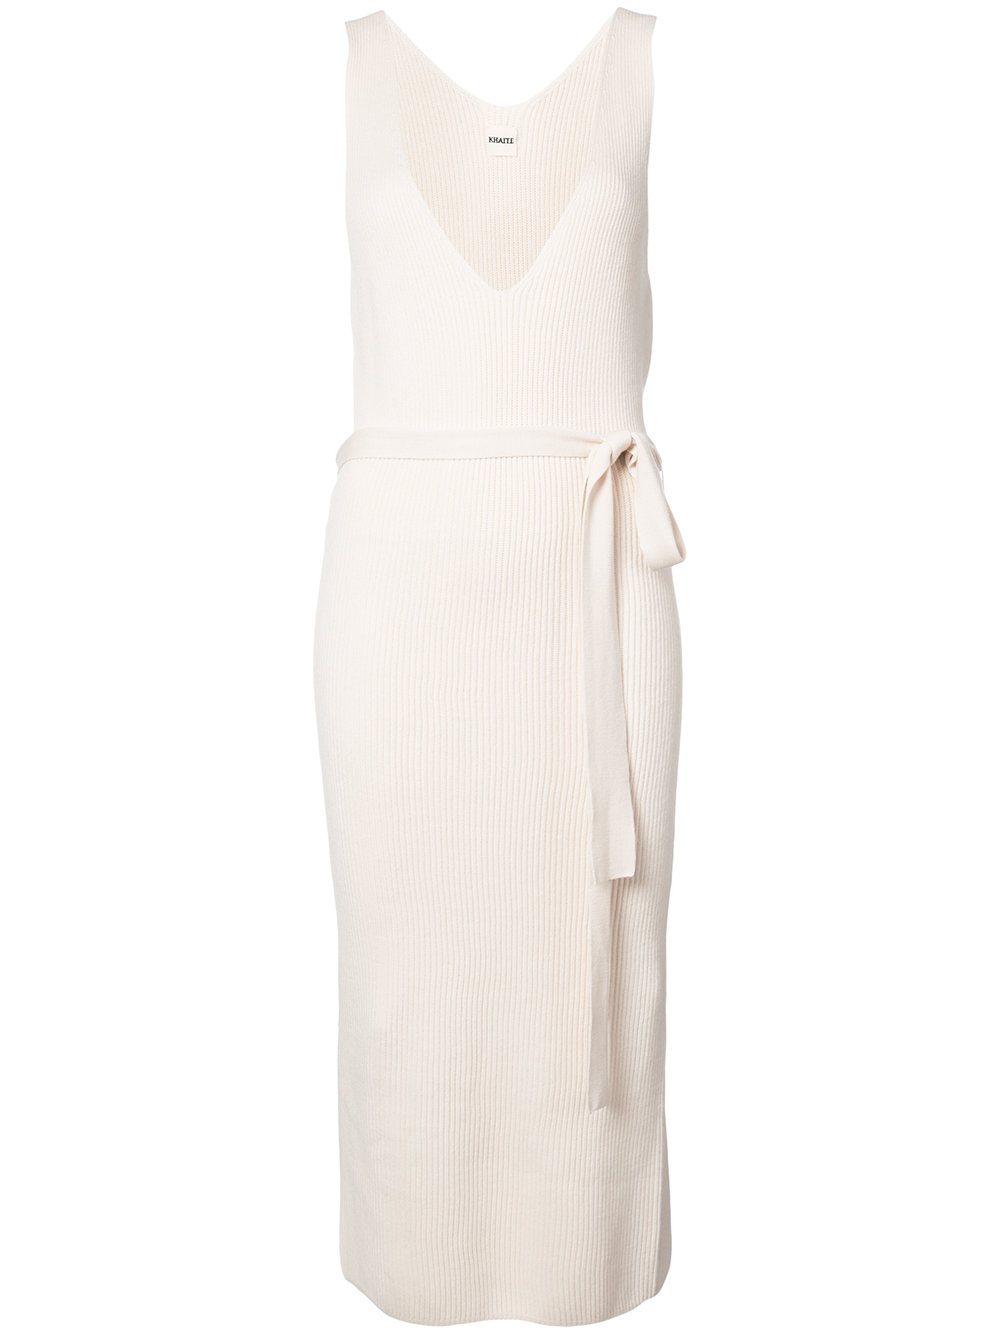 37798c3a81 Khaite Ribbed Dress - Farfetch